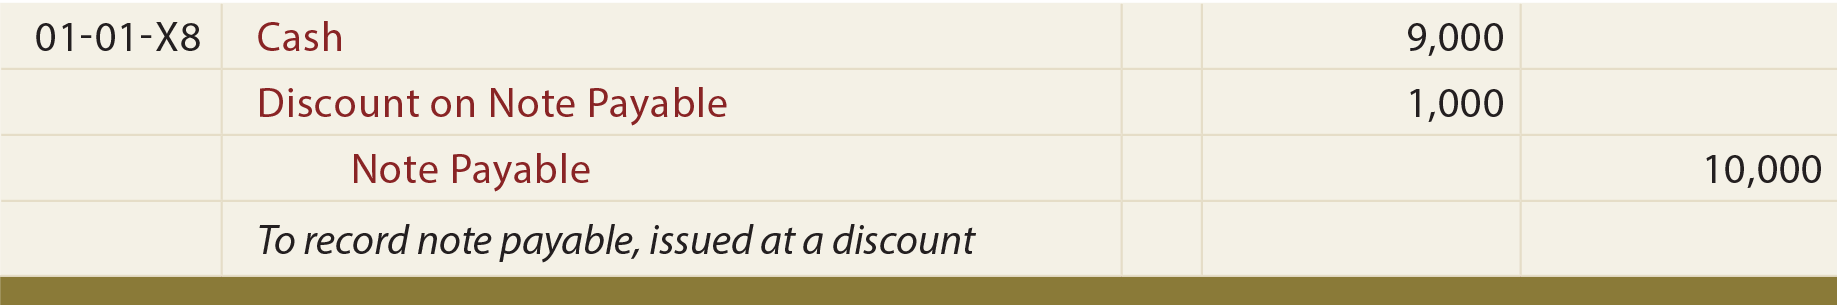 Great Note Issued At Discount Journal Entry  Note Payables